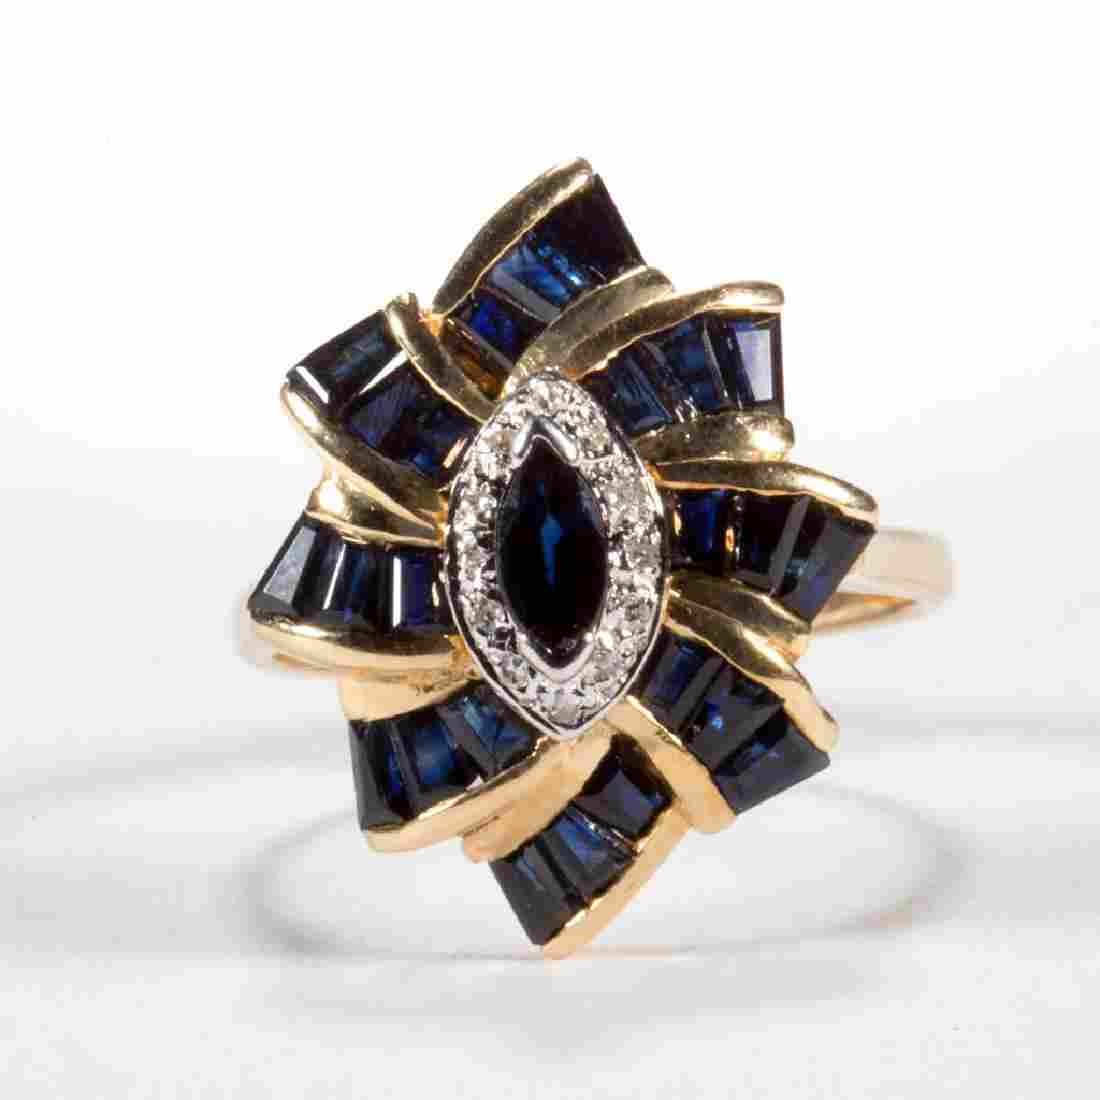 VINTAGE 14K GOLD AND SAPPHIRE LADY'S RING